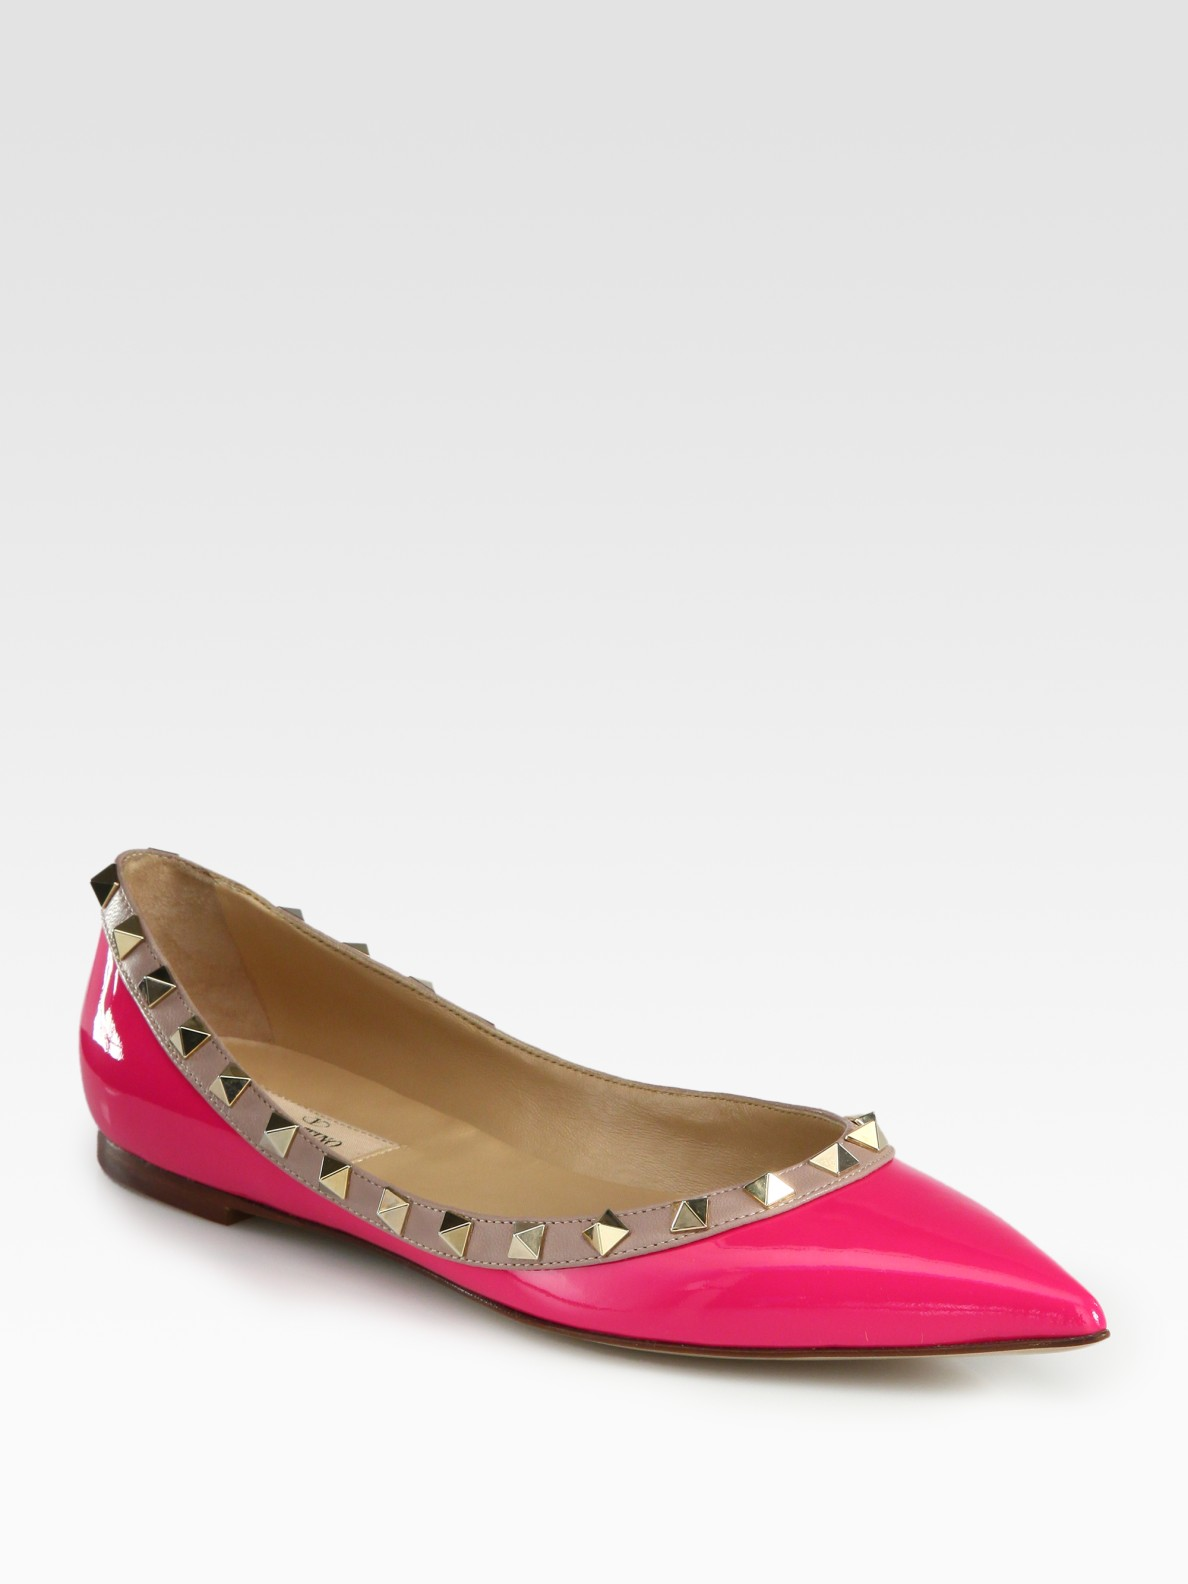 Valentino Rockstud Patent Leather Ballet Flats In Pink Lyst